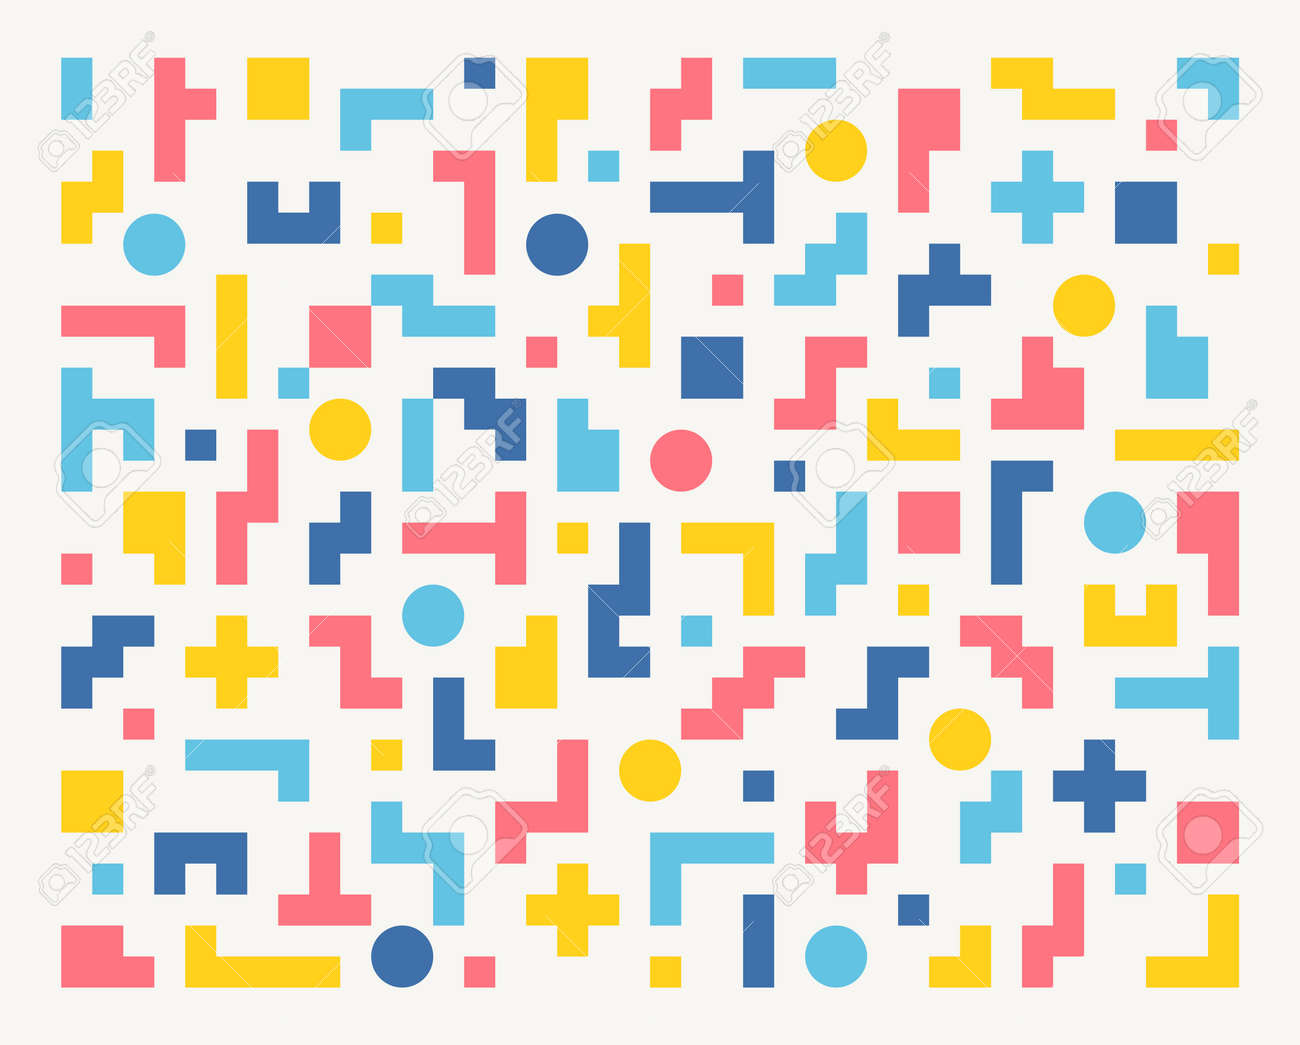 Tetris-shaped figures are combined to make a pattern. Simple pattern design template. - 172360963